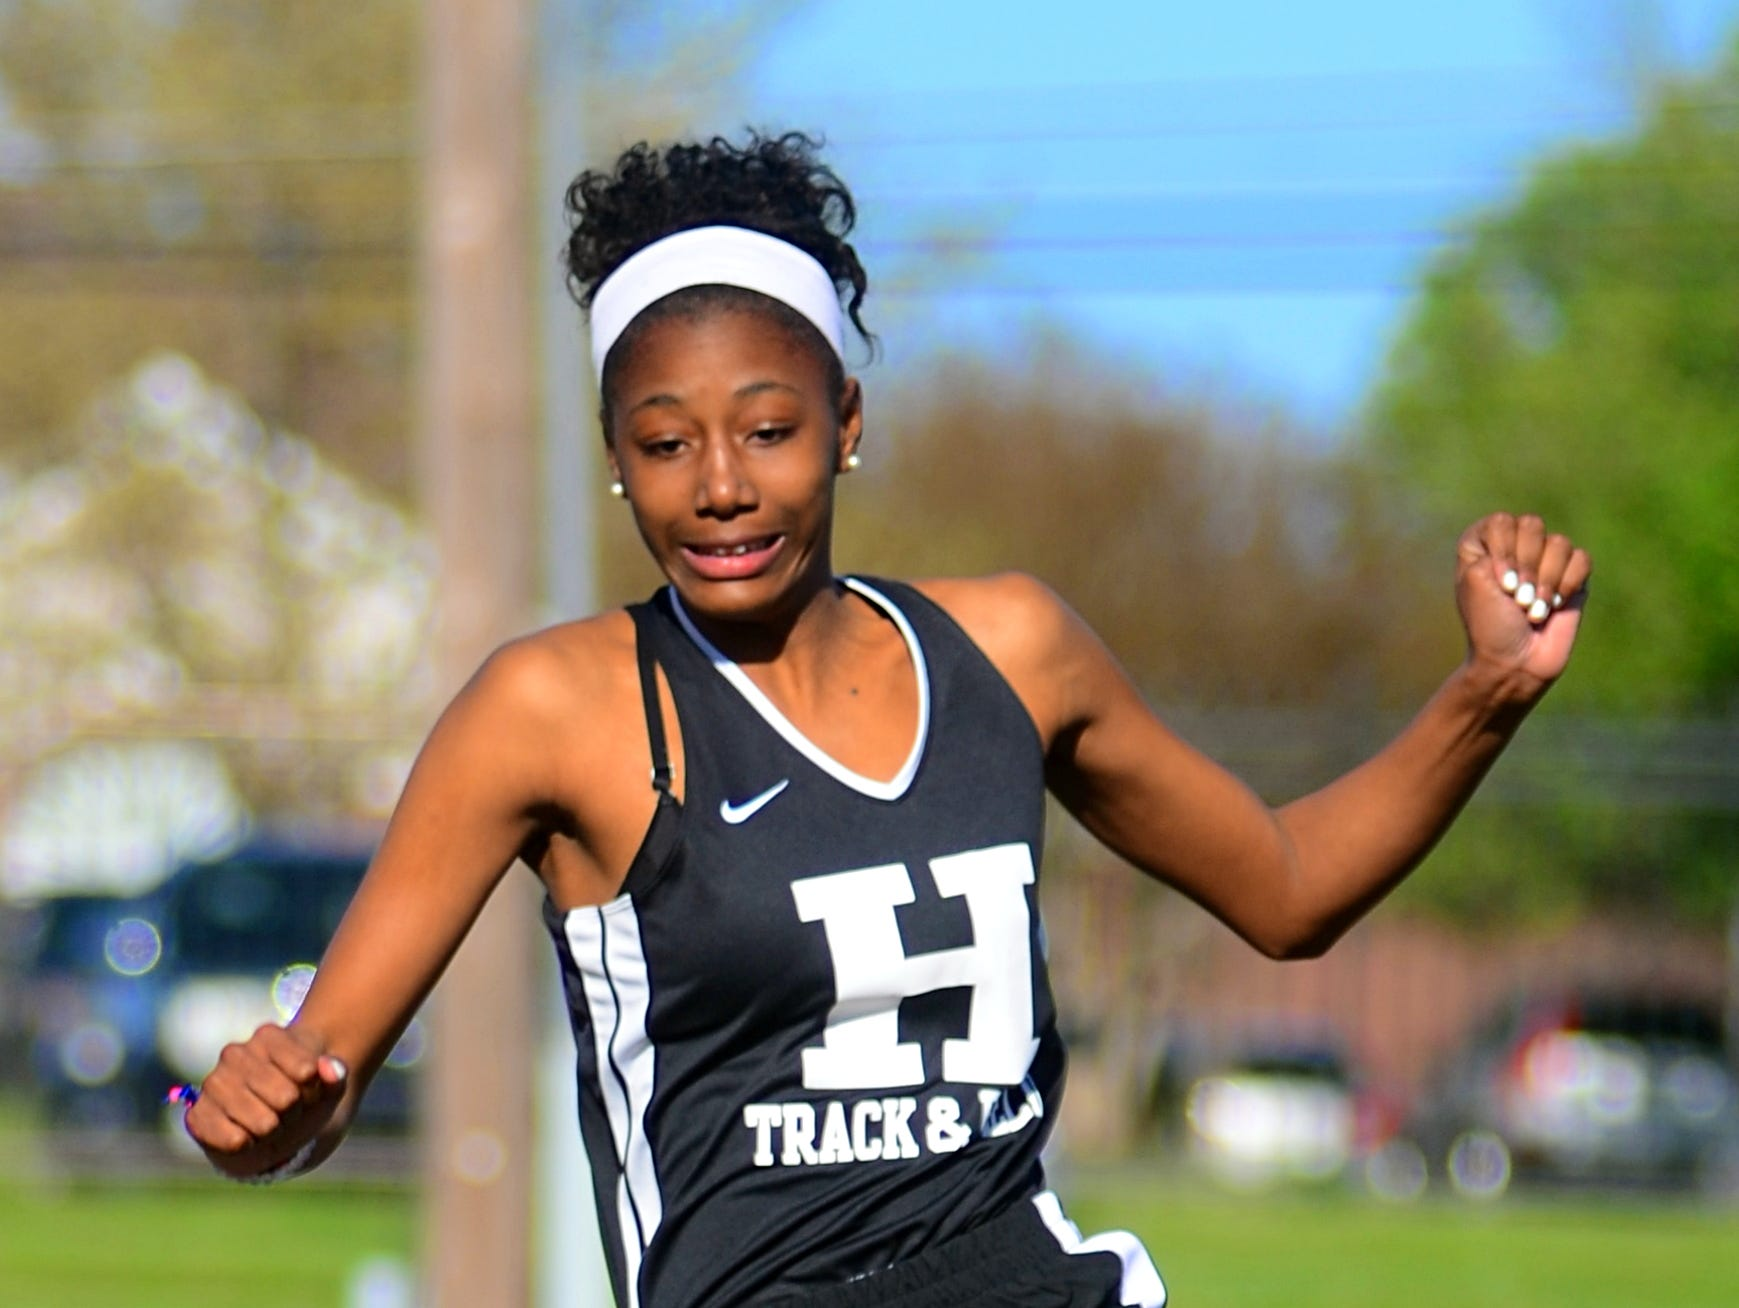 Hendersonville High sophomore Dee Gaston finished second in the girls' long jump with a best effort of 15 feet, 6 inches.